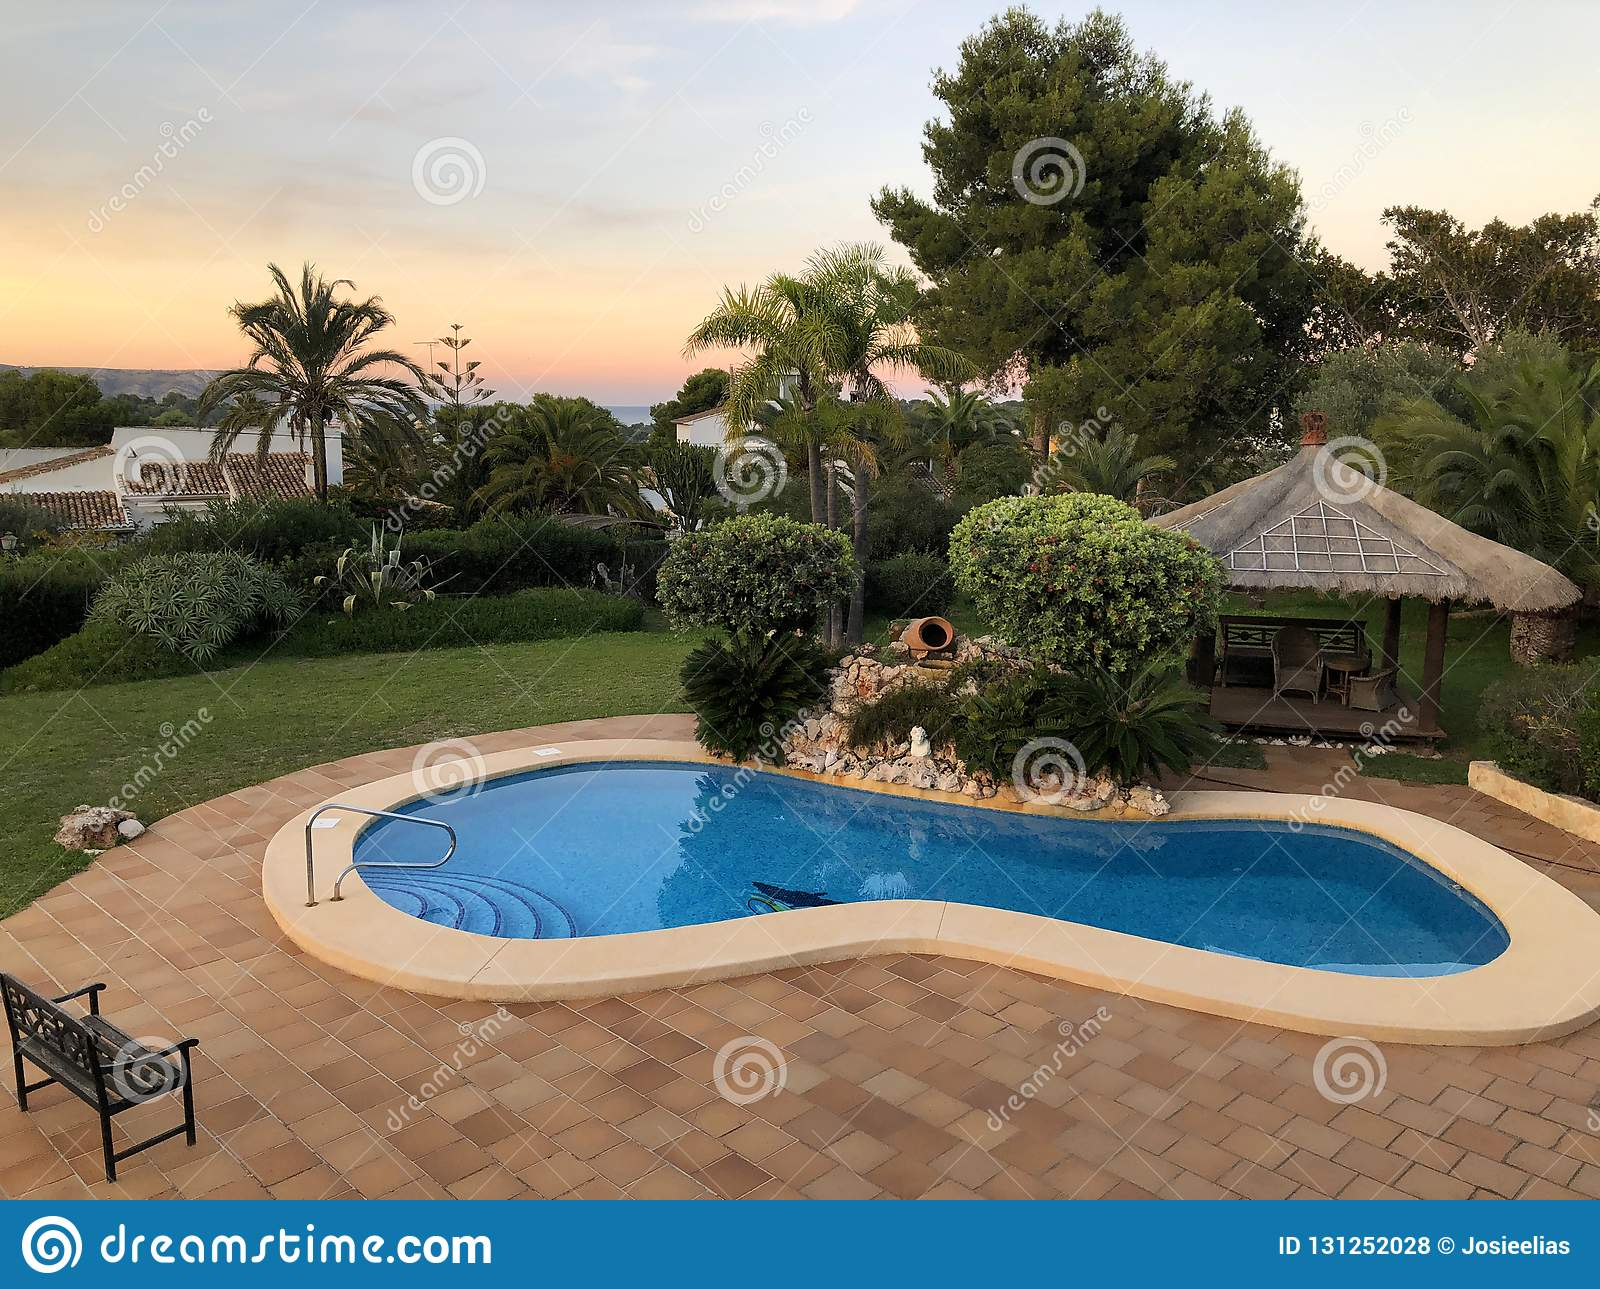 Mediterranean garden with a private swimming pool